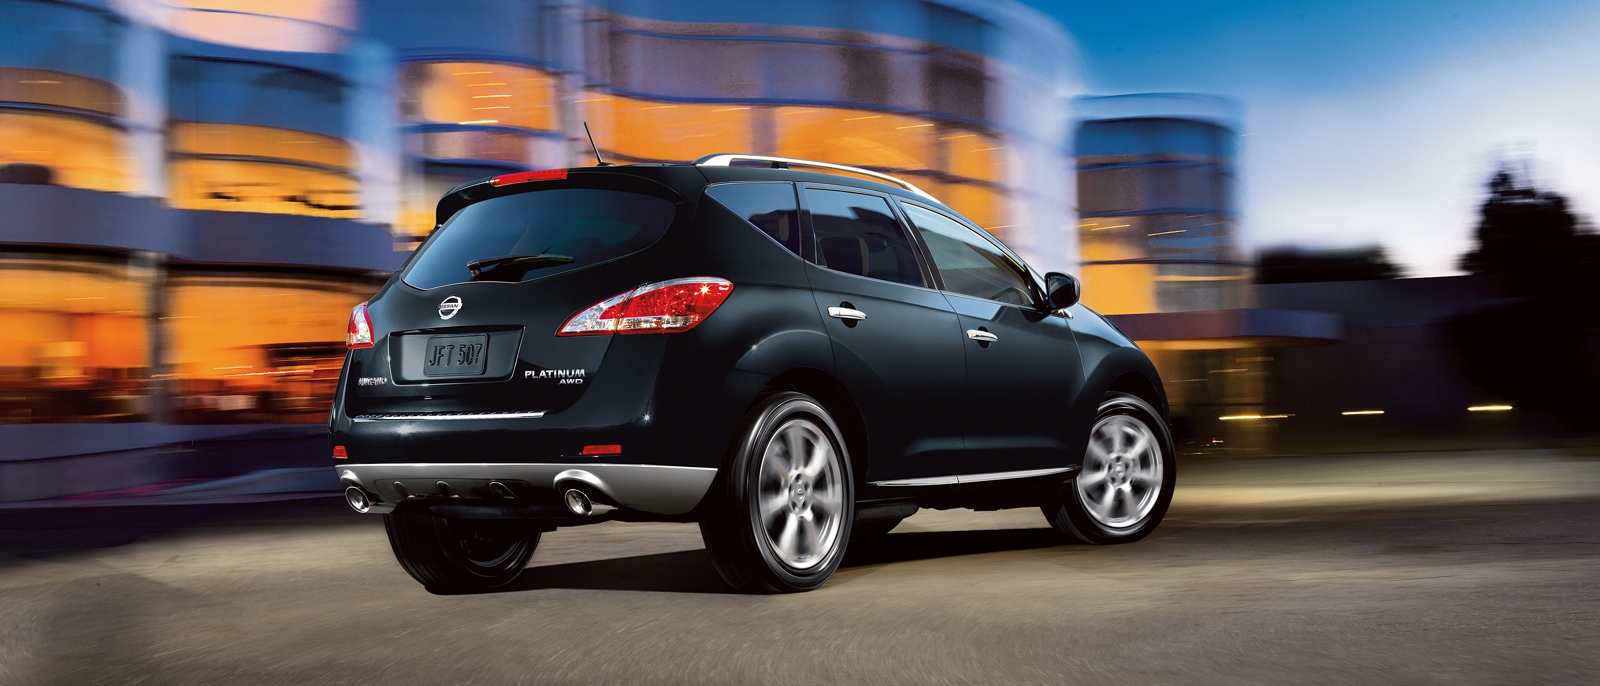 Andy Mohr Plainfield >> 2014 Nissan Murano Indianapolis Plainfield | Andy Mohr Avon Nissan